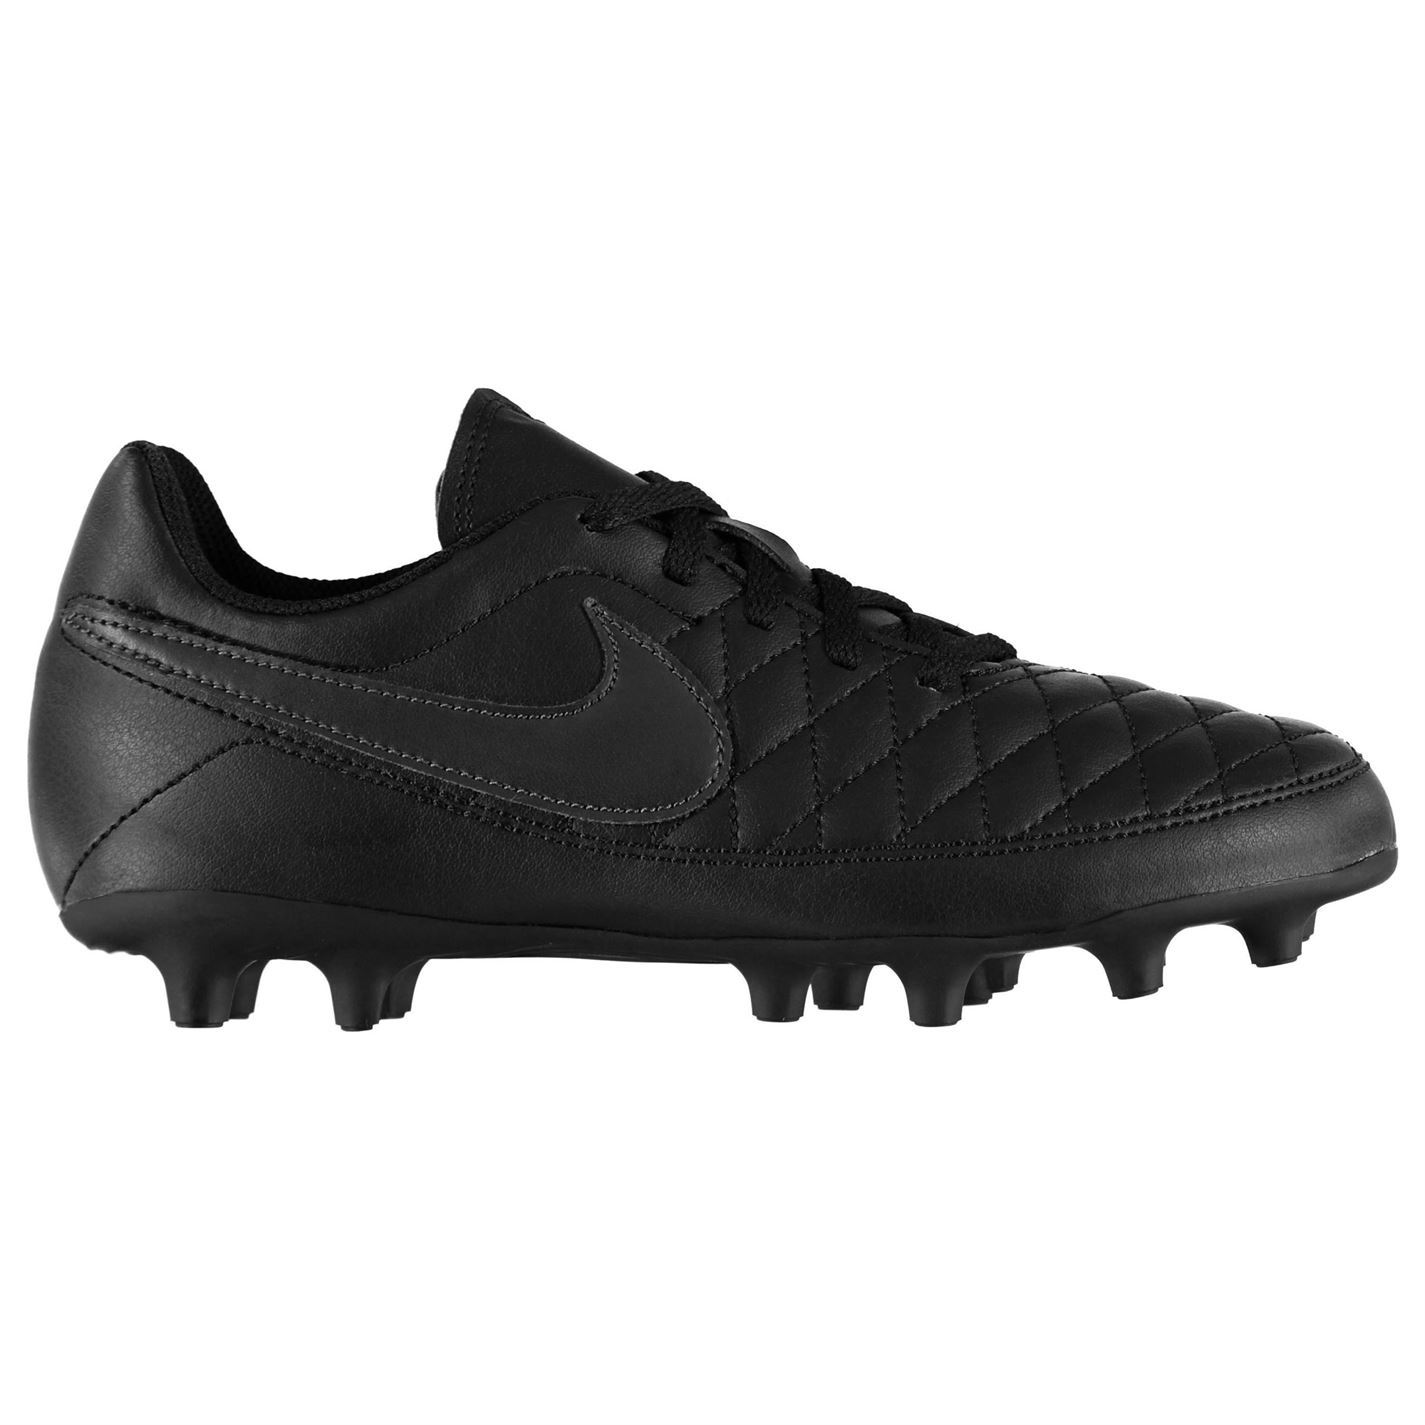 miniature 6 - Nike-majestry-FG-Firm-Ground-Chaussures-De-Football-Enfants-Football-Chaussures-Crampons